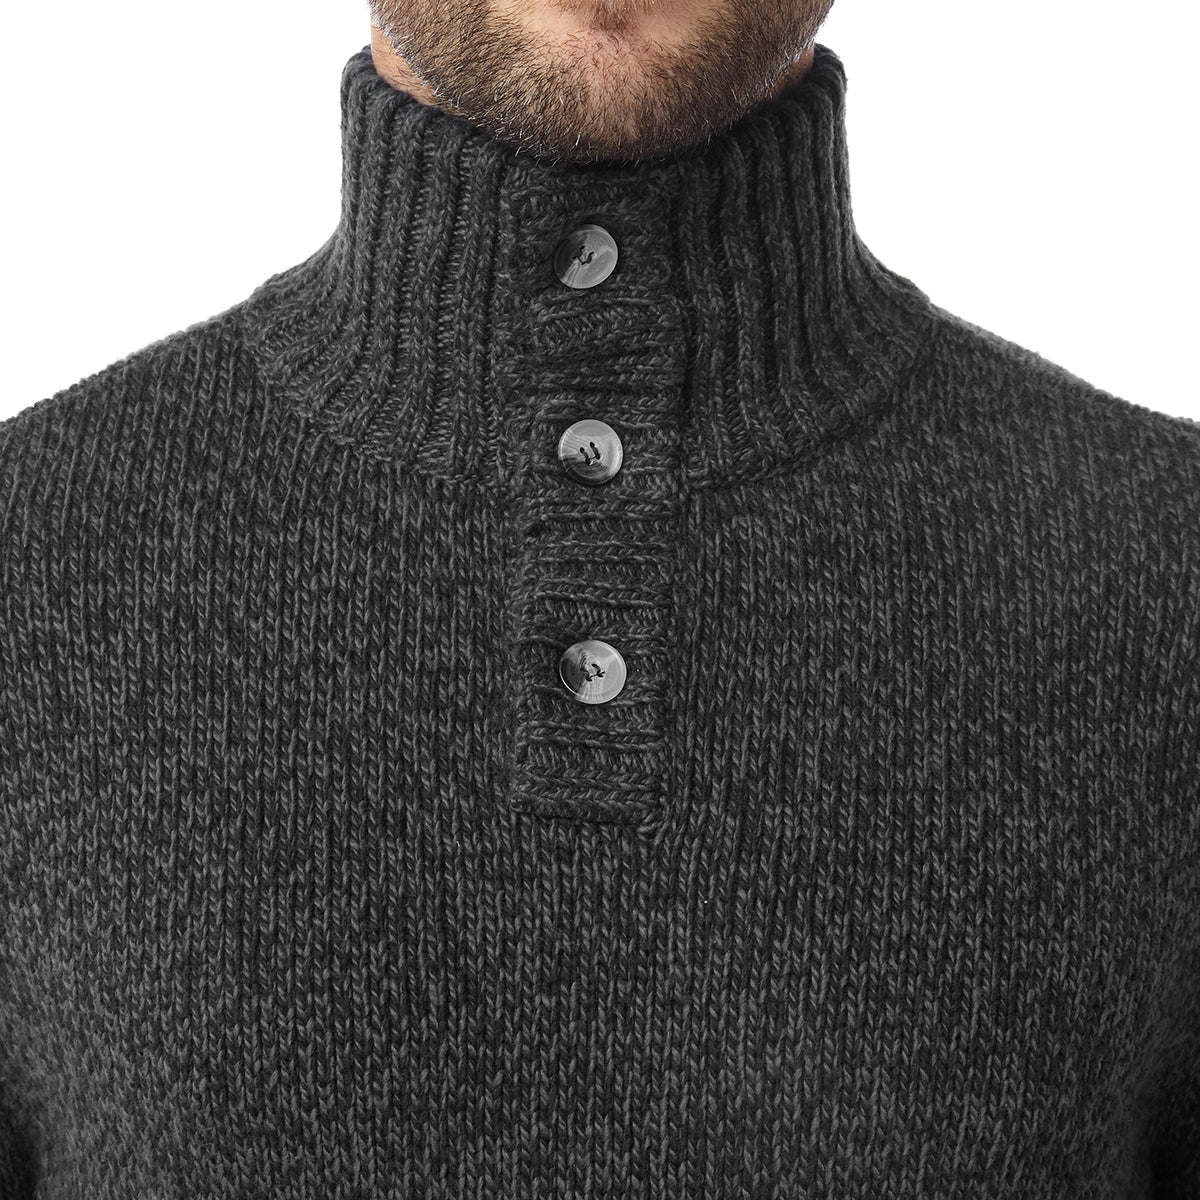 Crambe Mens Button Neck Jumper - Black/Grey image 4